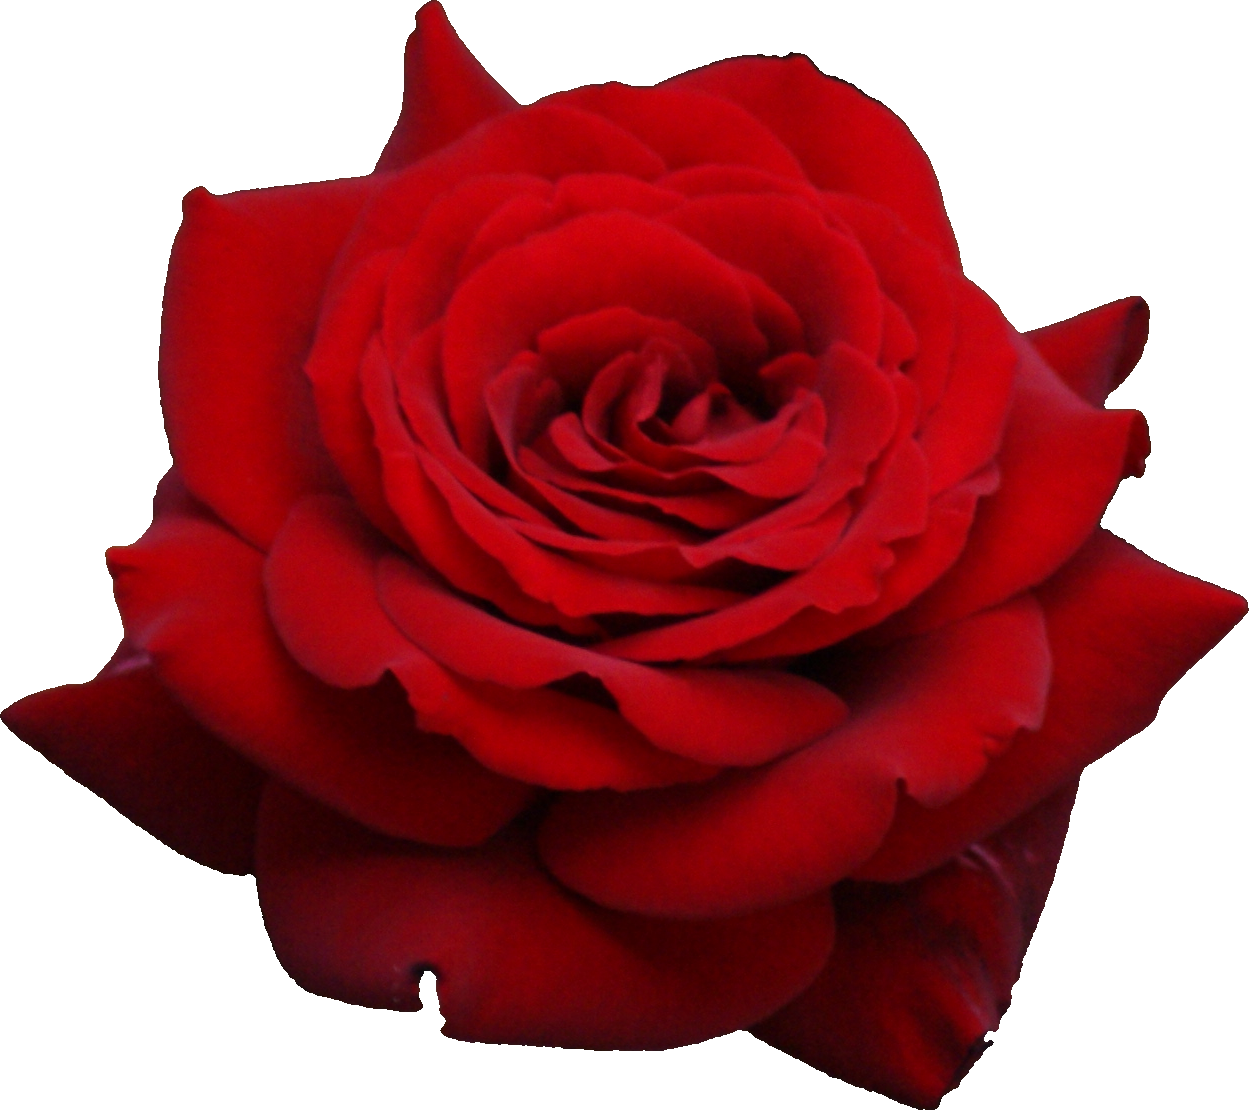 Red rose png image, free picture download - Rose PNG HD